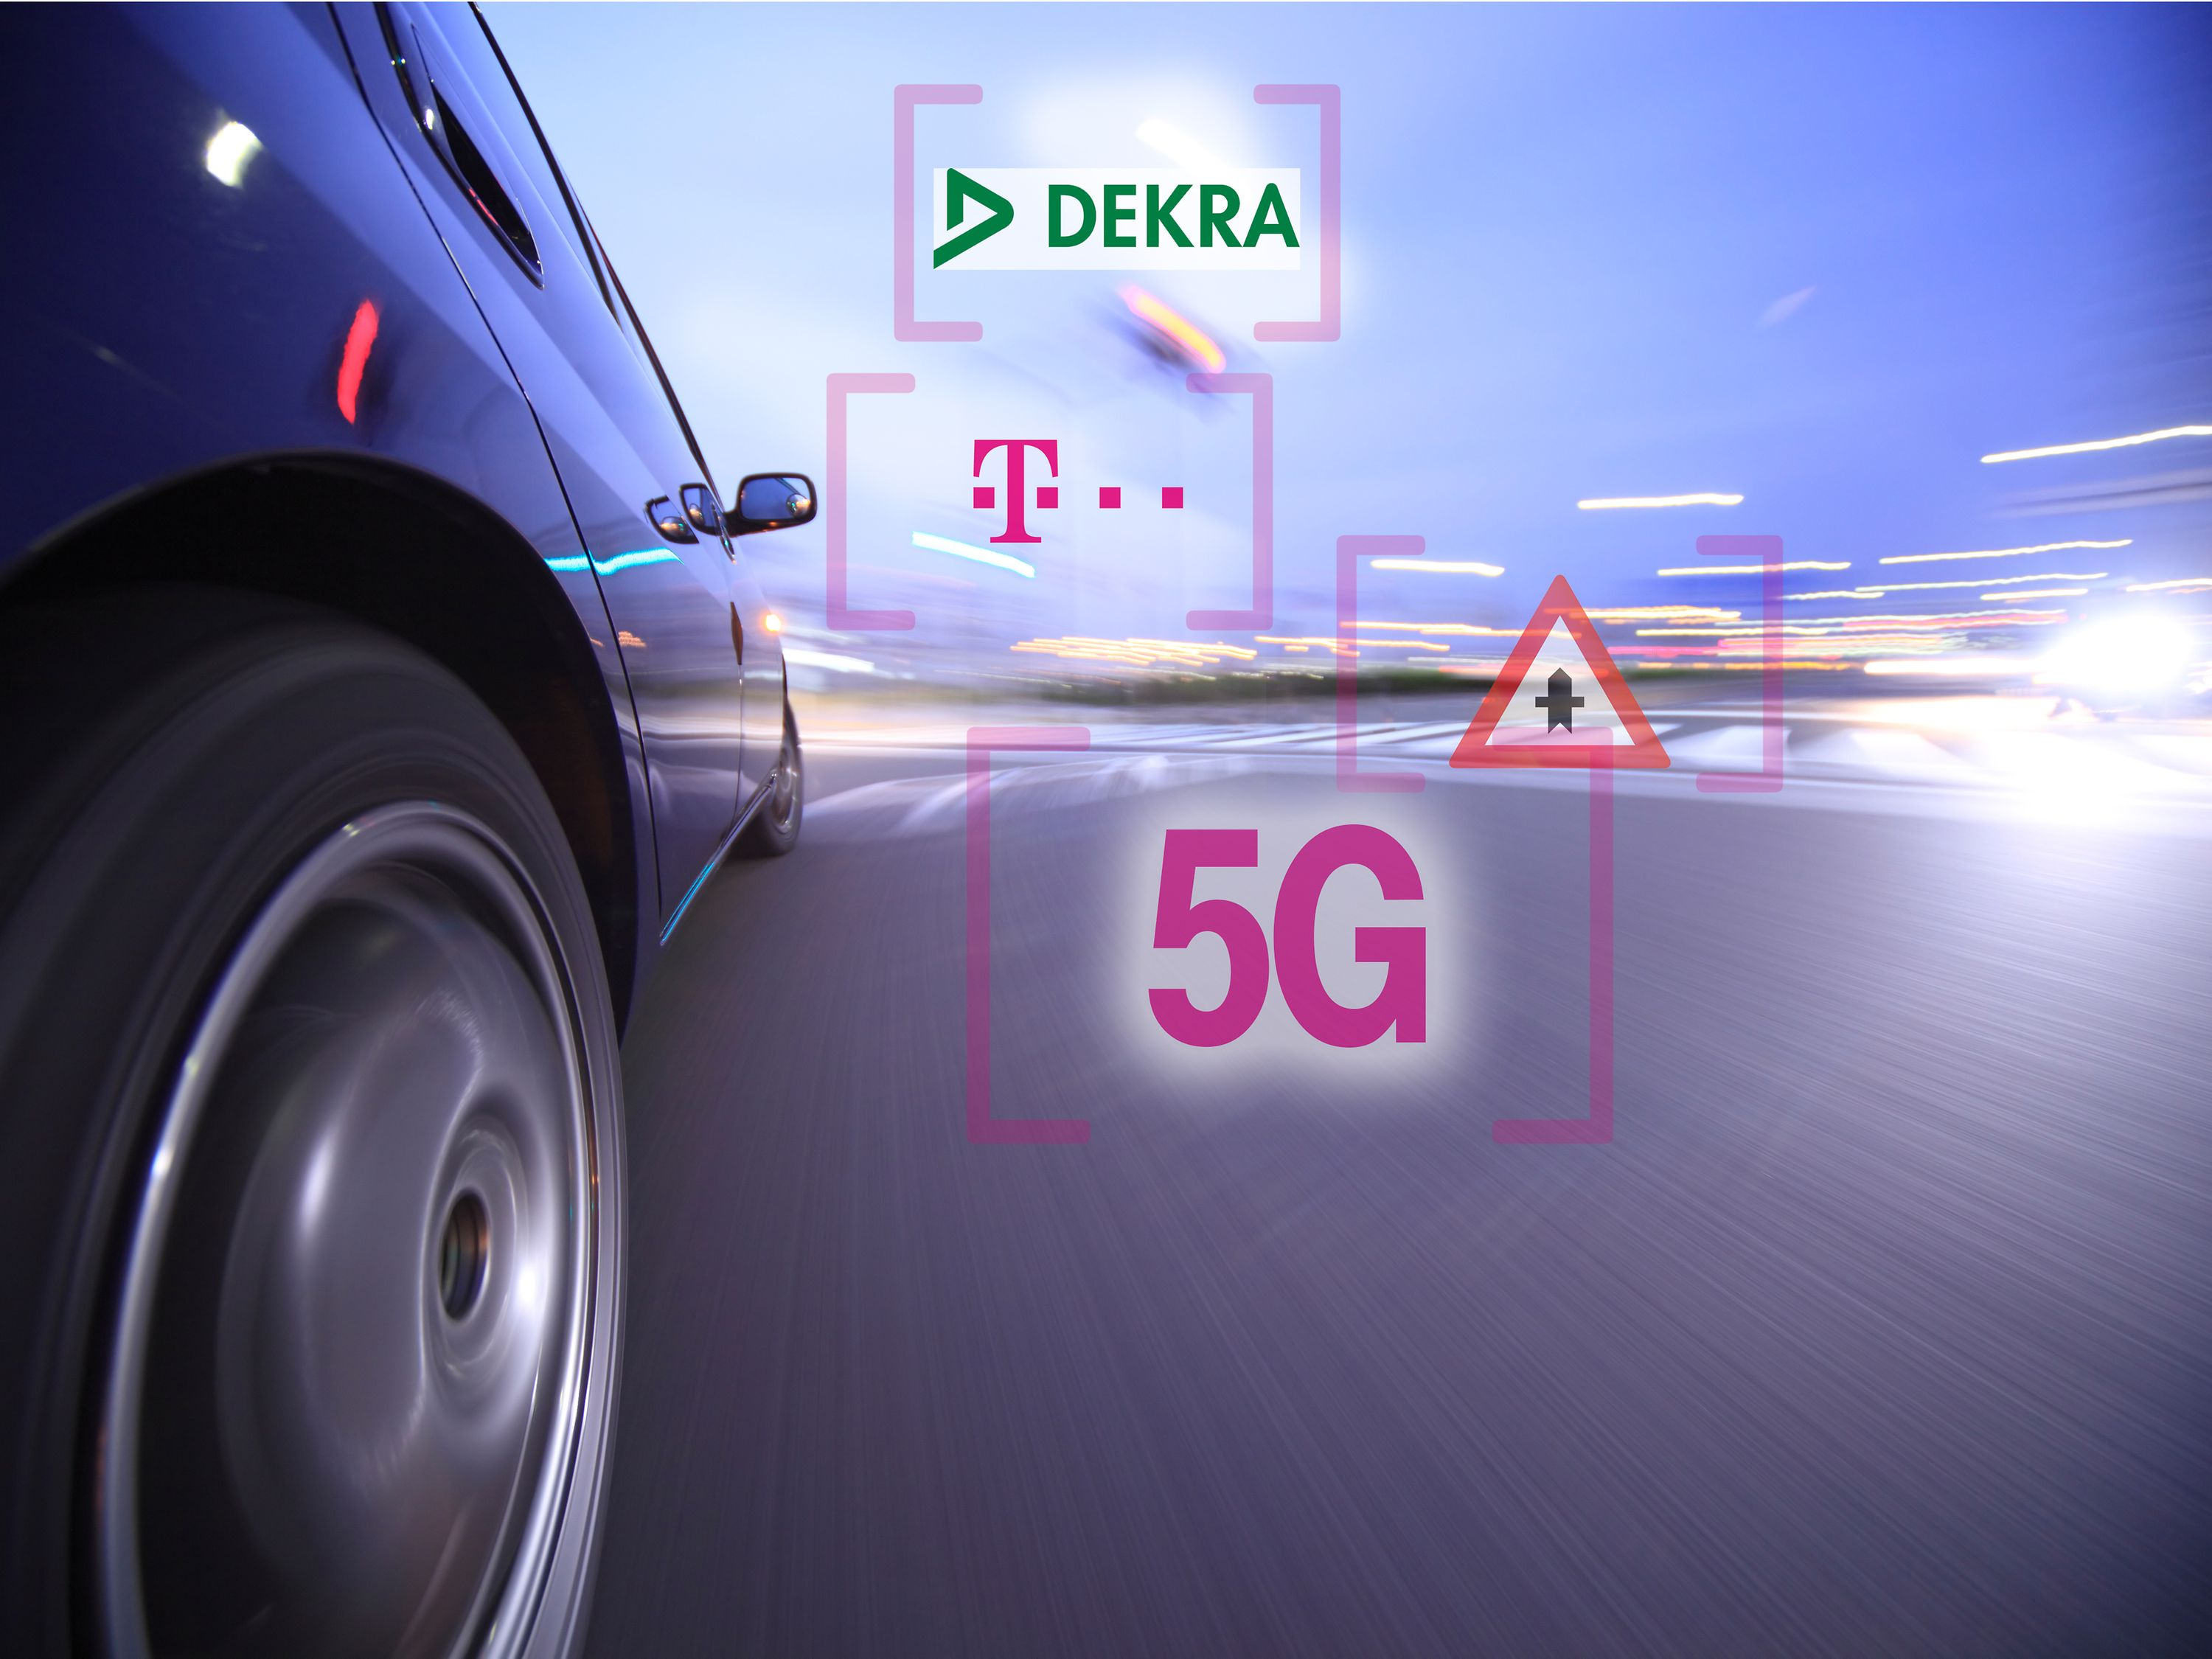 Deutsche Telekom and DEKRA test 5G for connected mobility.